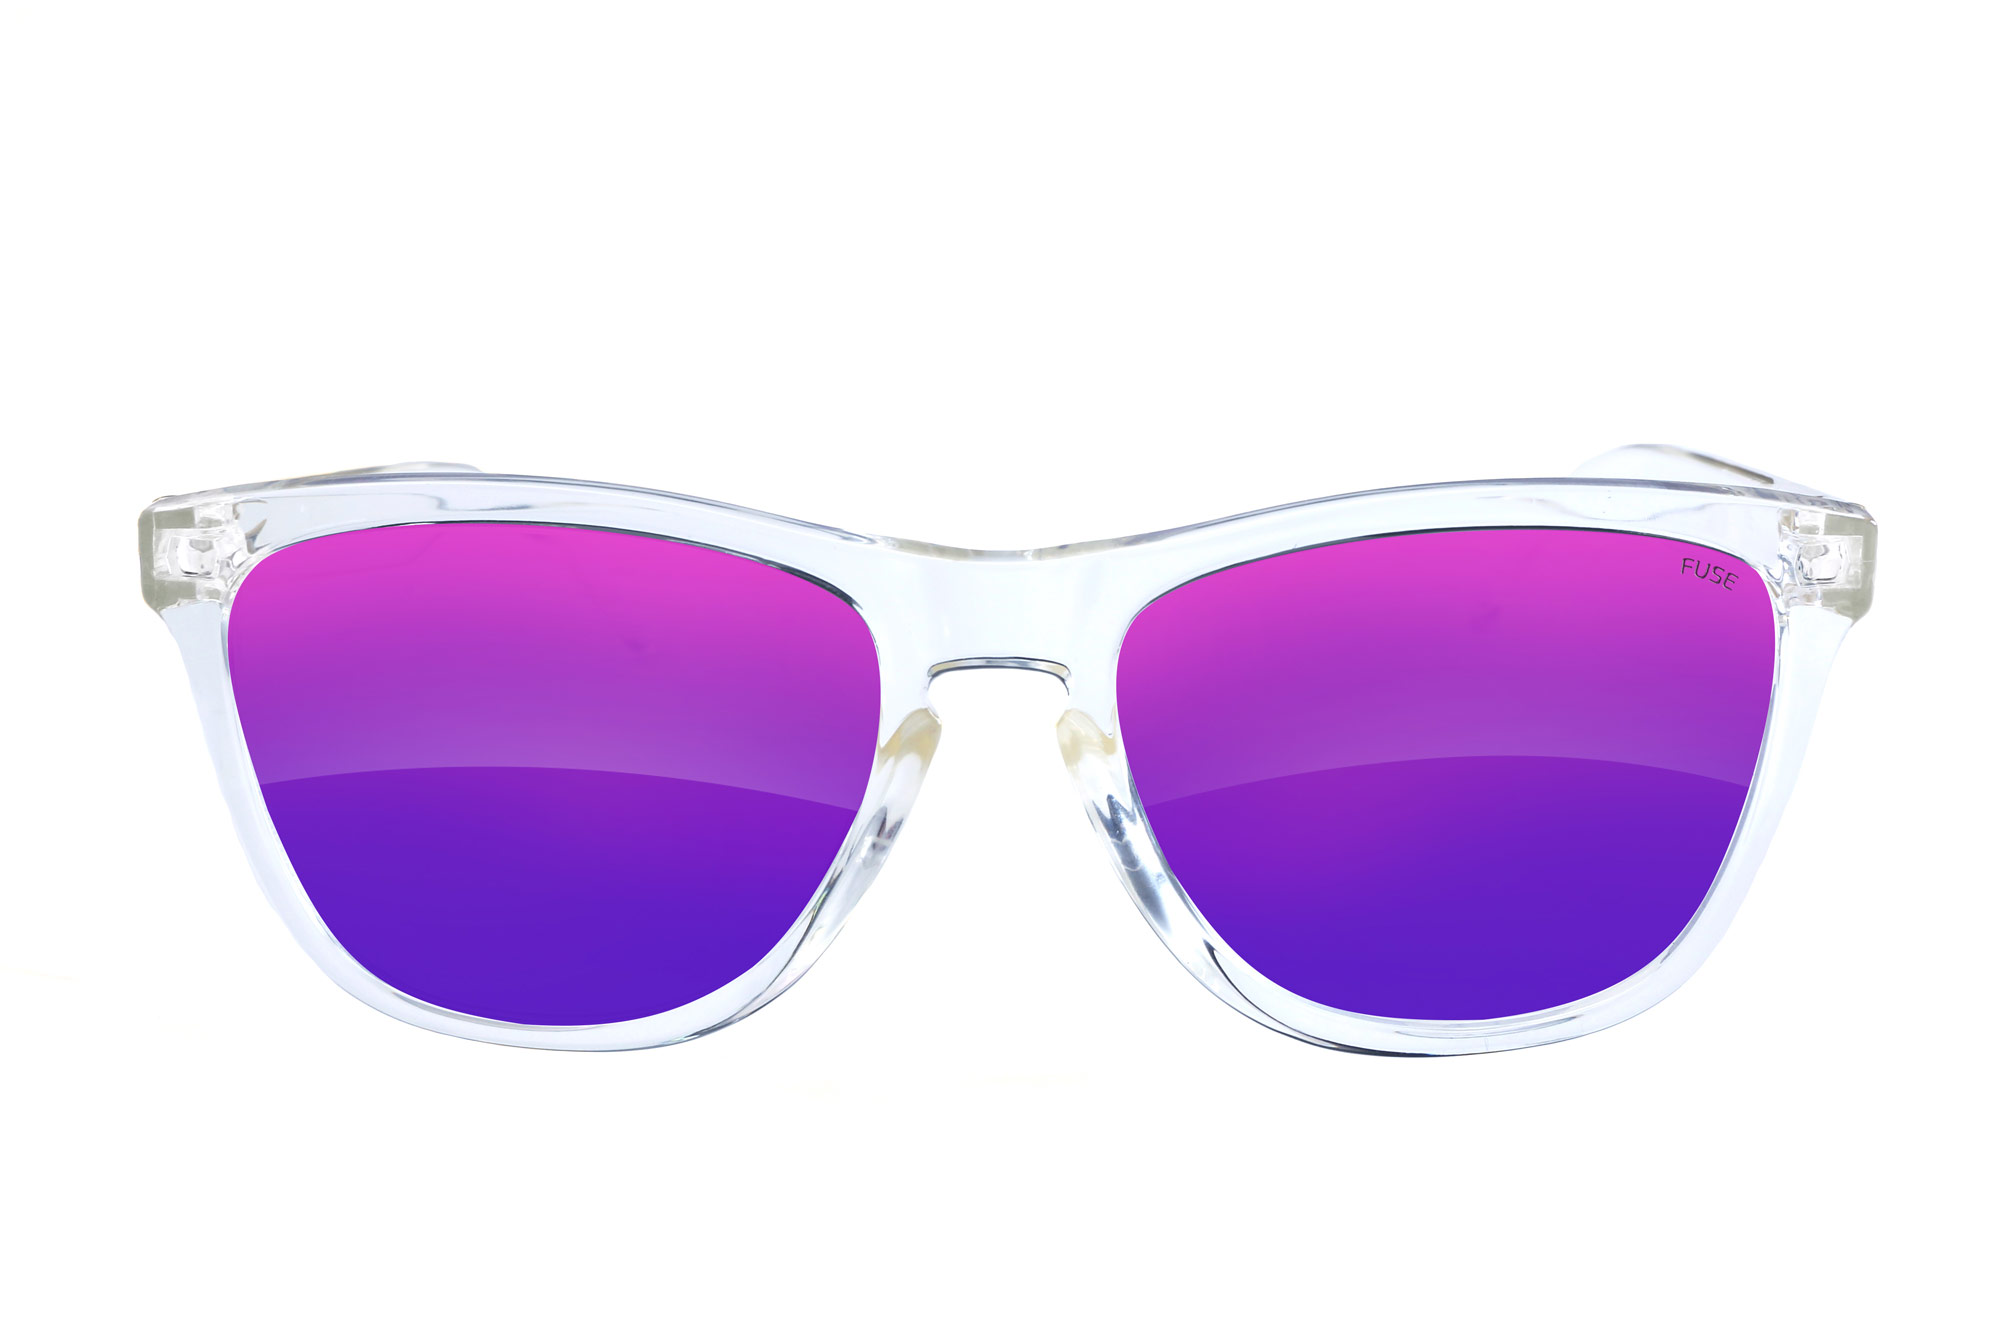 Fuse Lenses Polarized Replacement Lenses for Marciano GM 711